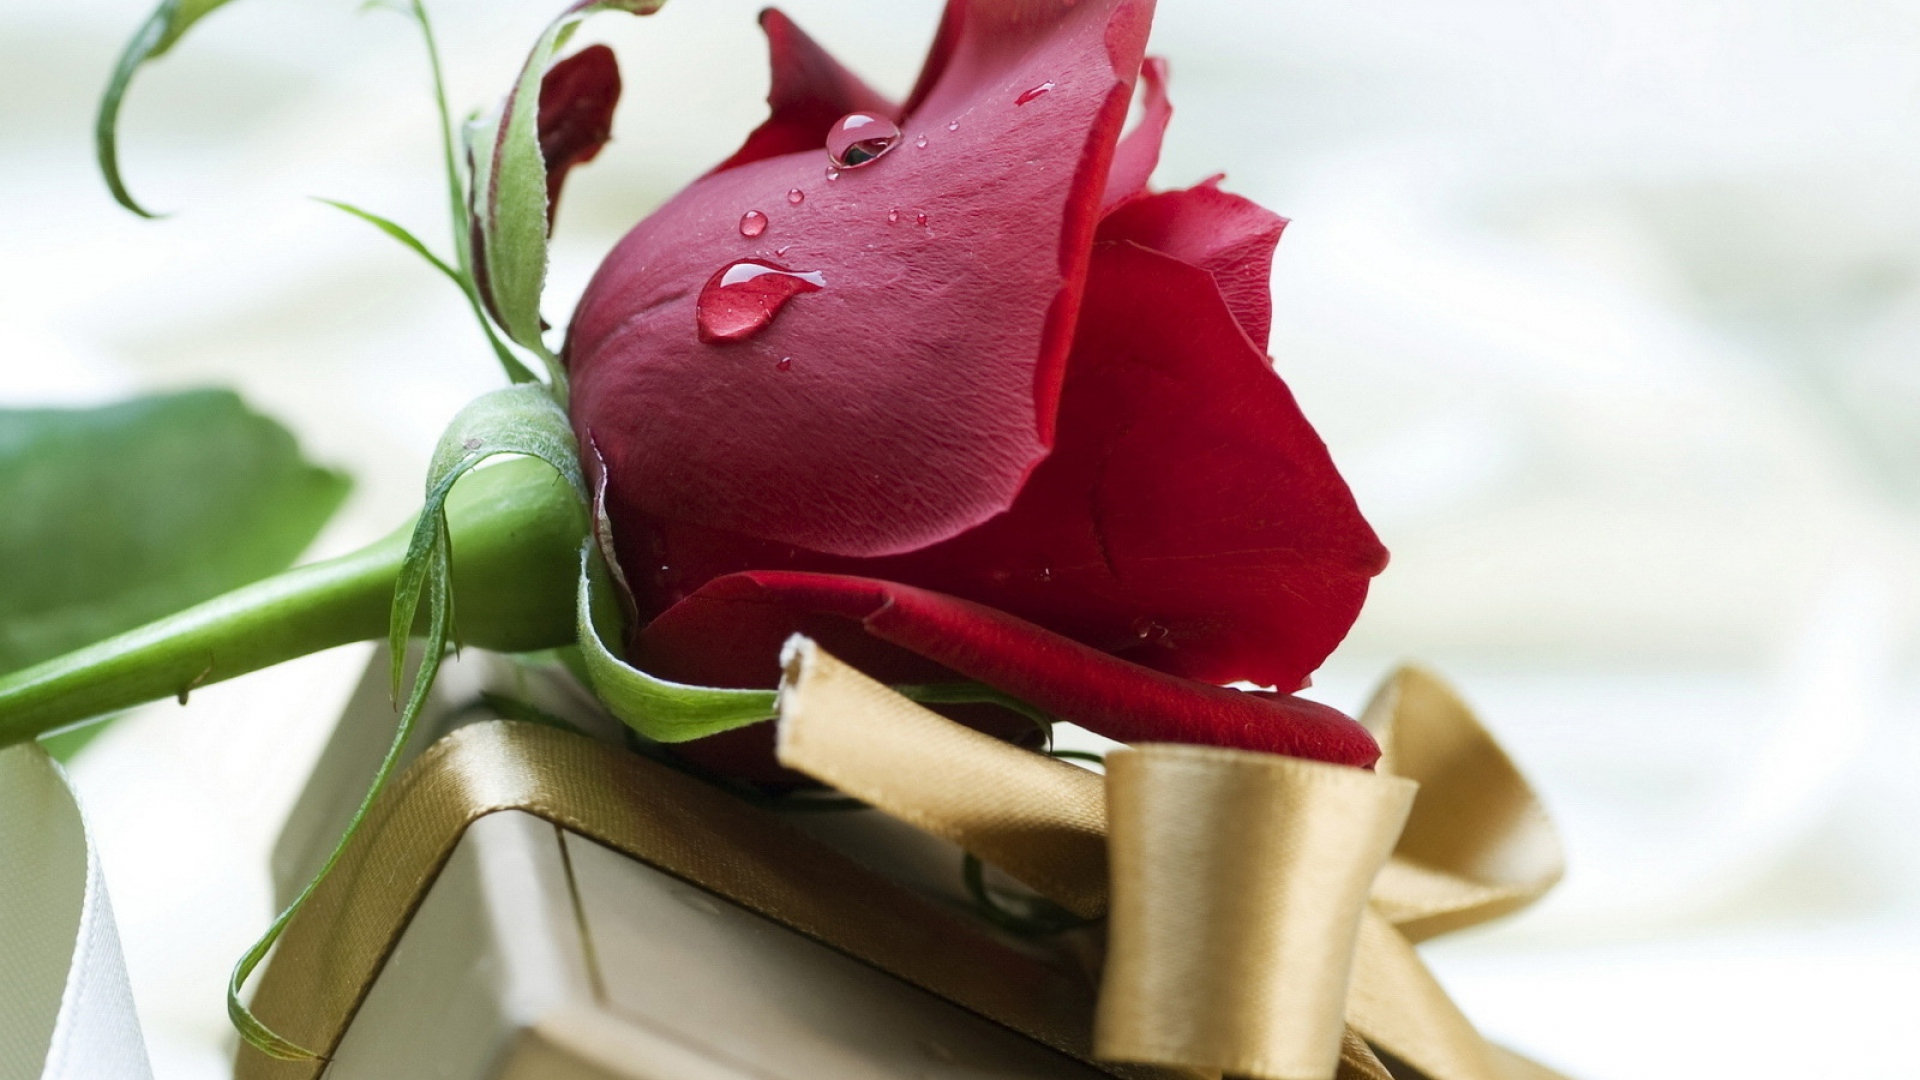 Download wallpaper 1920x1080 rose drop gift holiday flower full rose drop gift negle Gallery